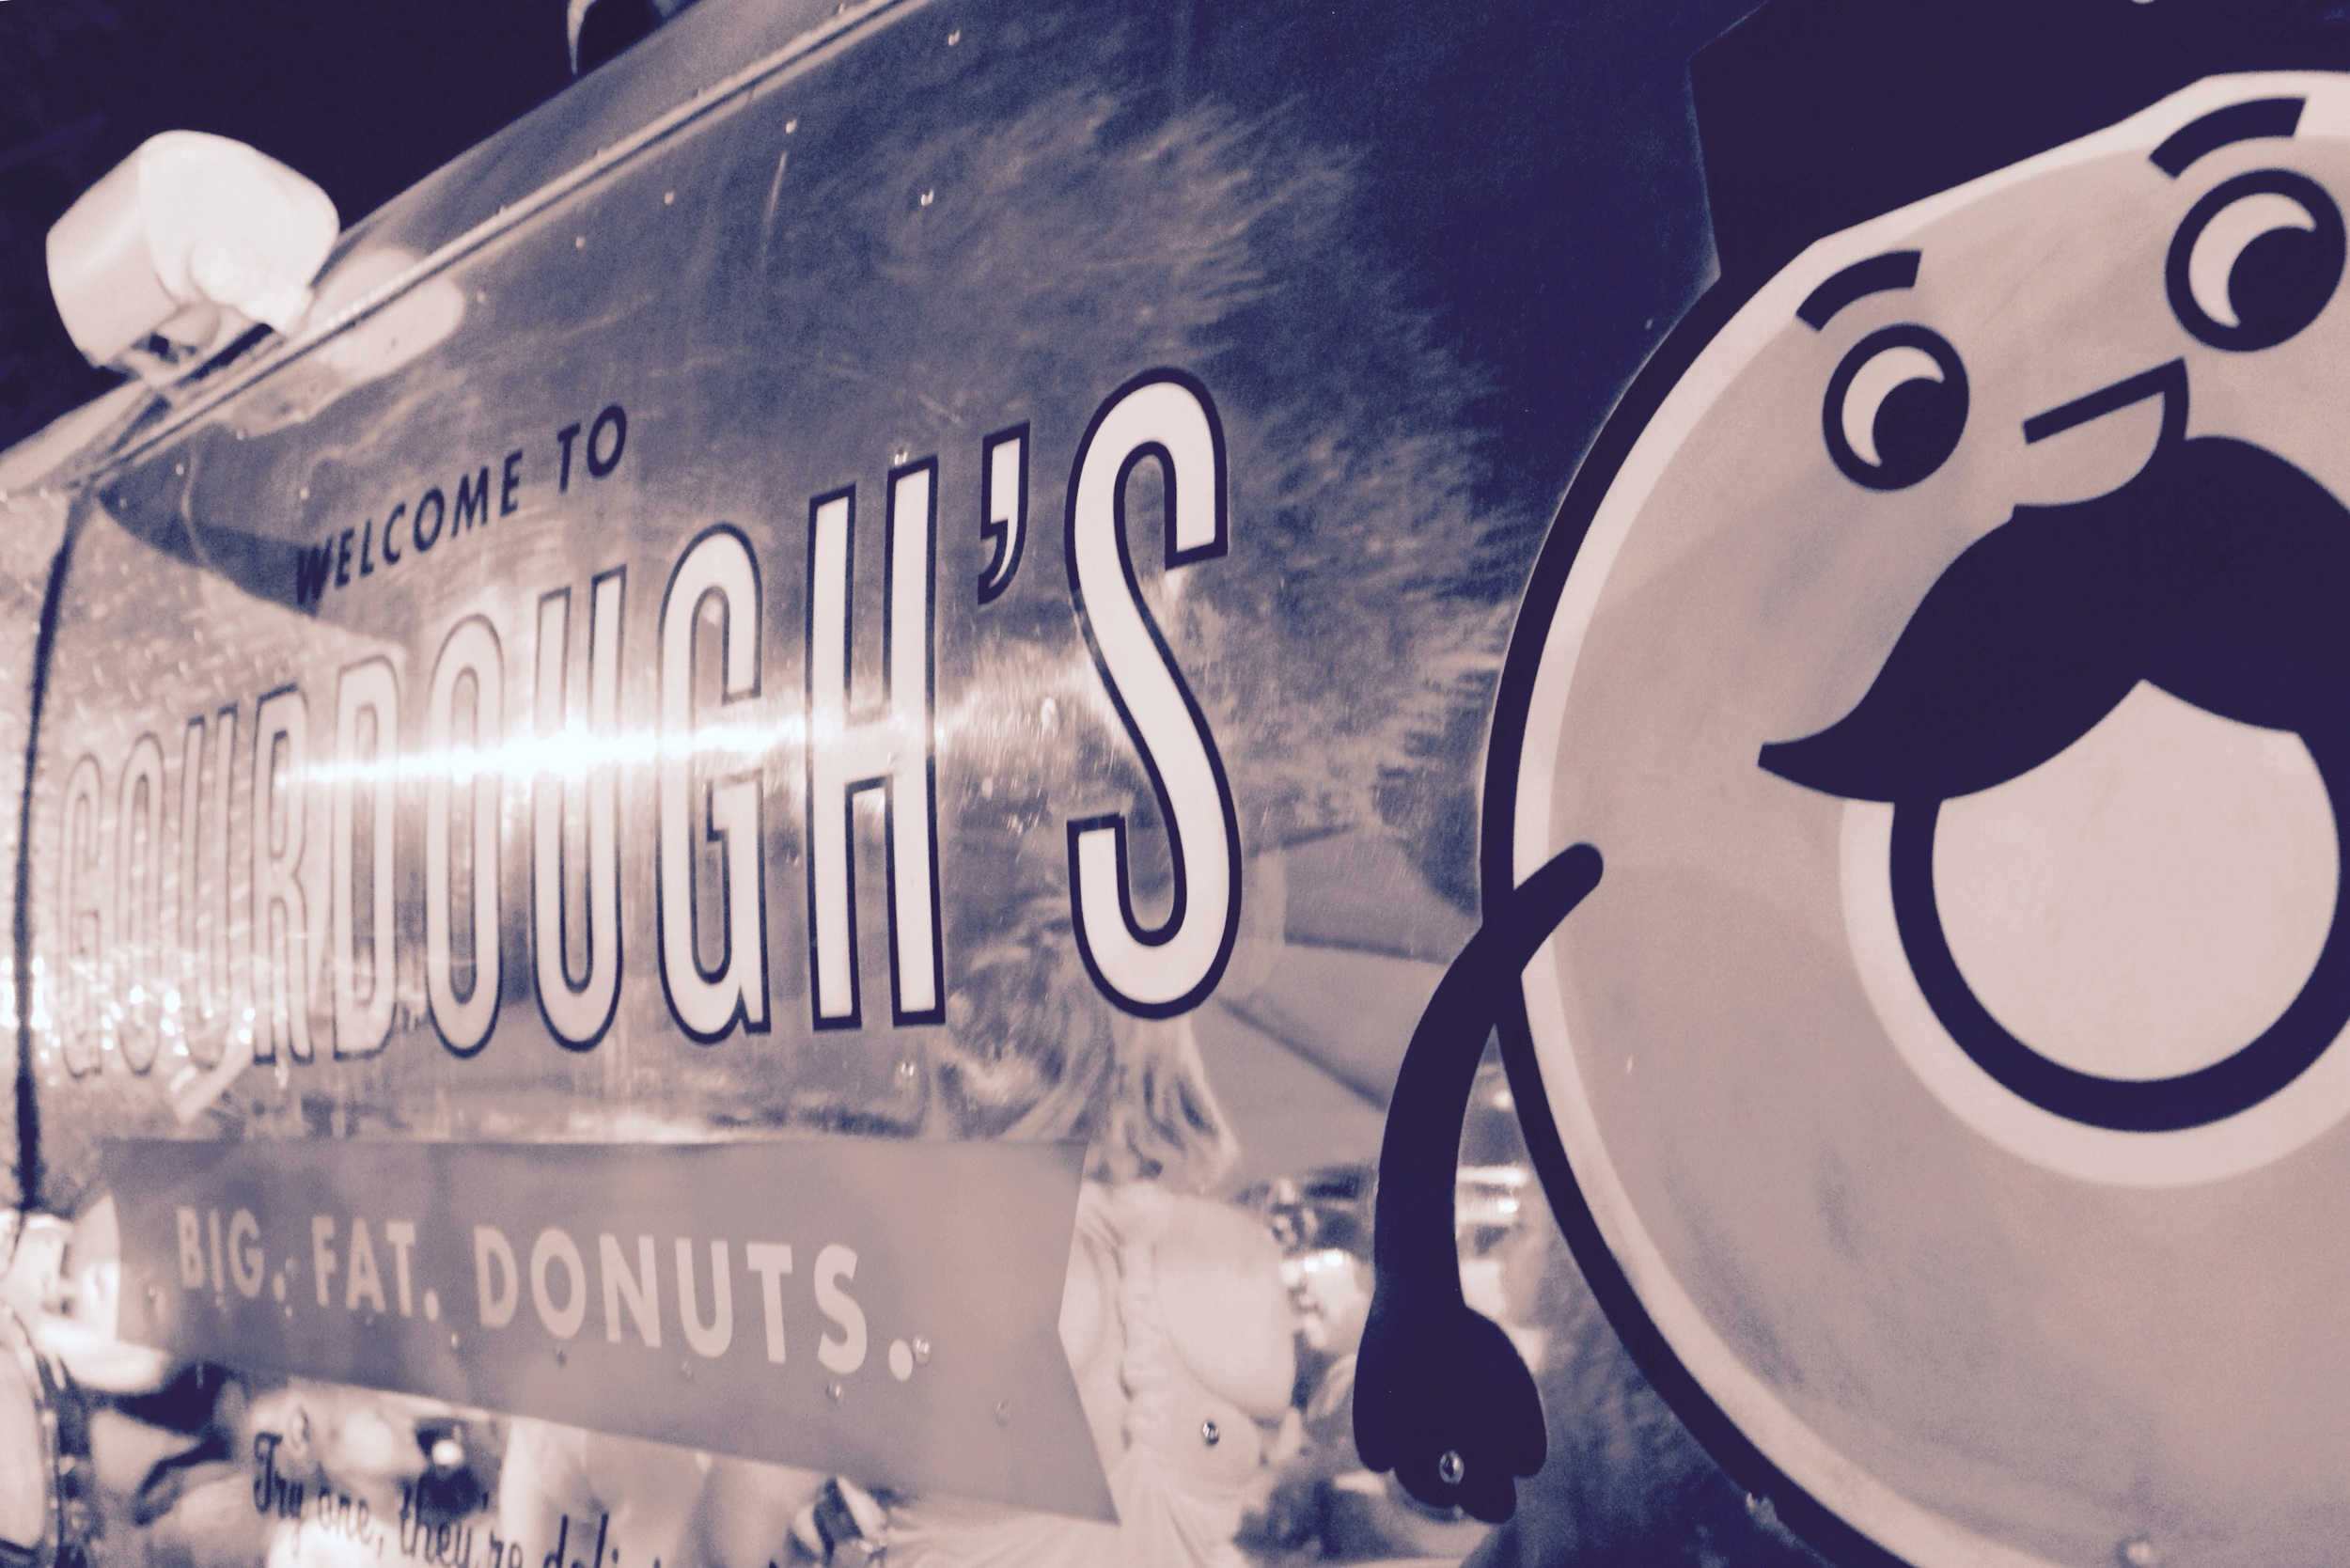 Waiting in line at Gourdough's